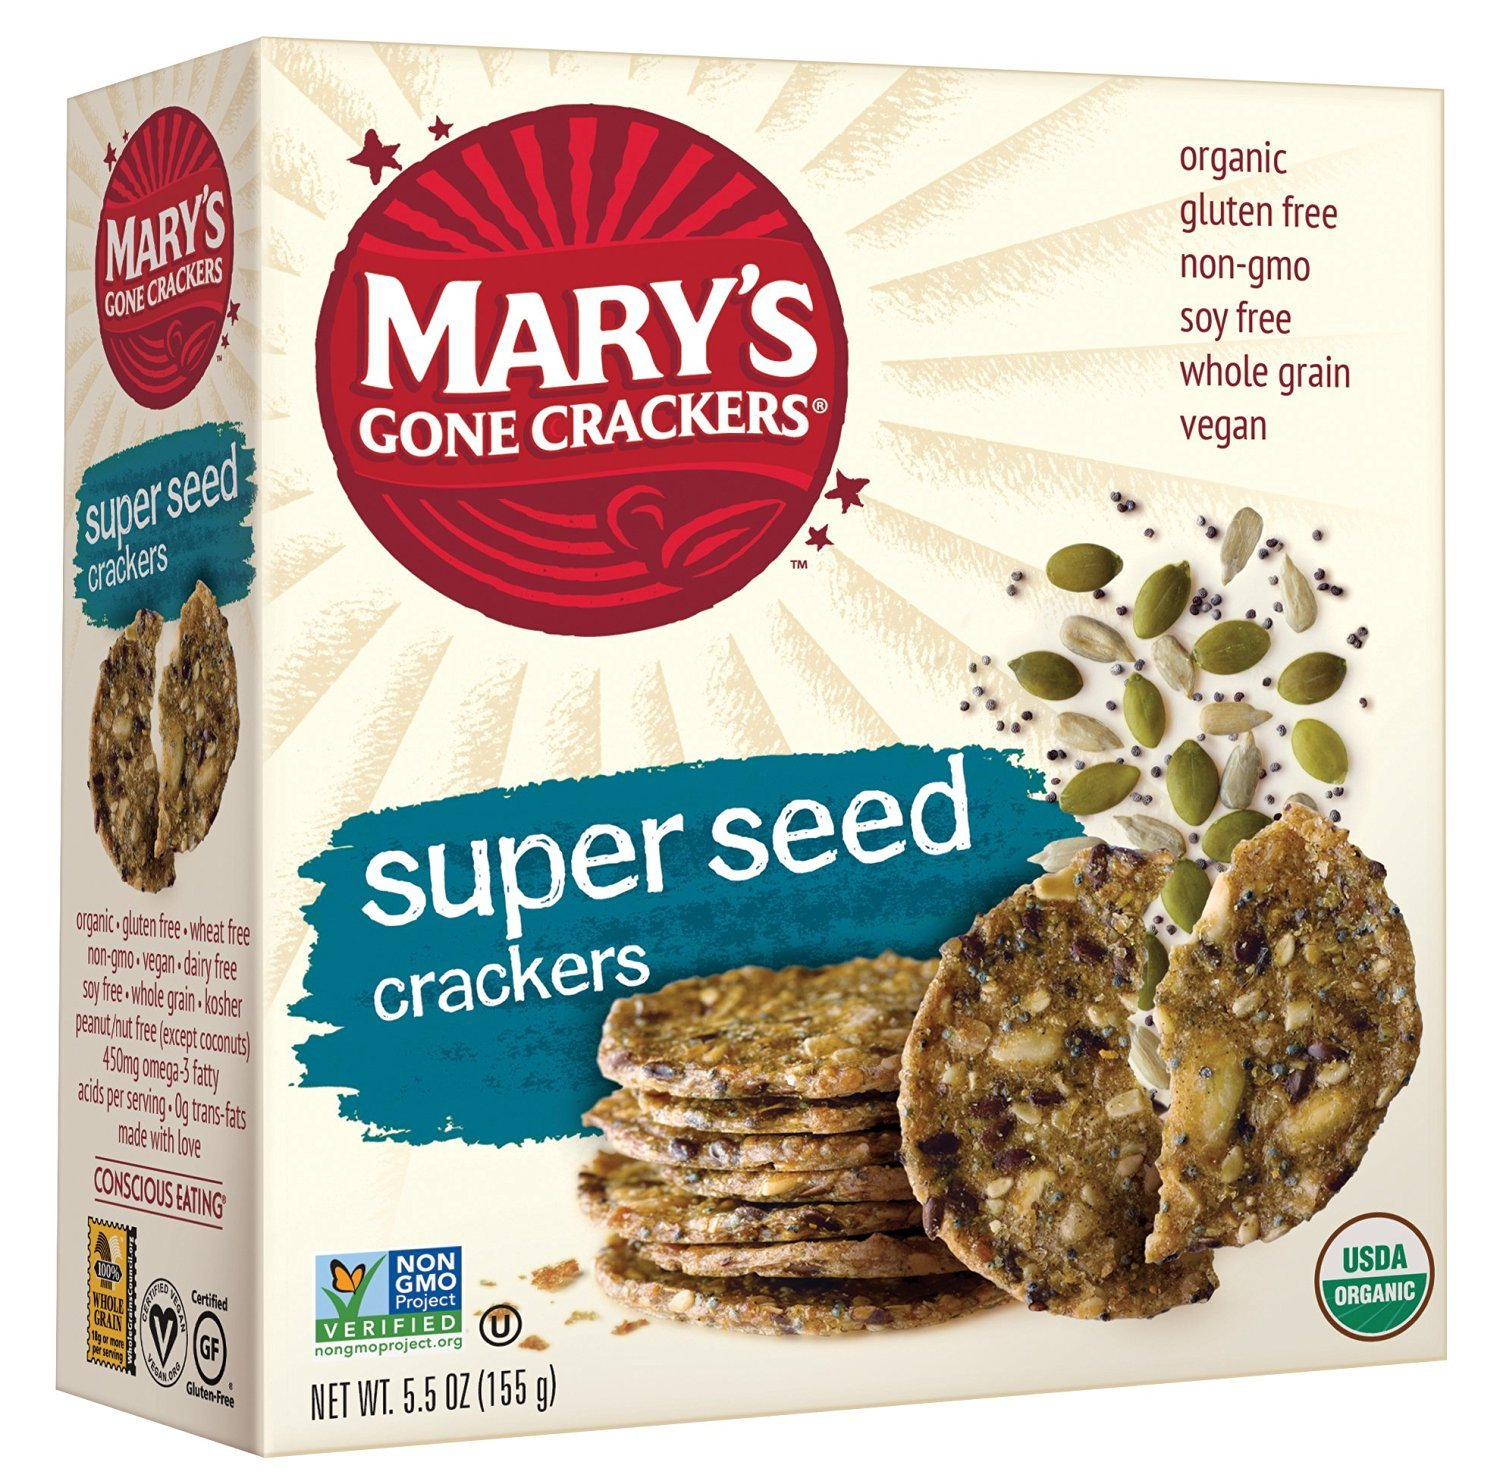 Mary's Gone Crackers, Organic, Super Seed Crackers, 5.5 oz (155 g) 2 Pack